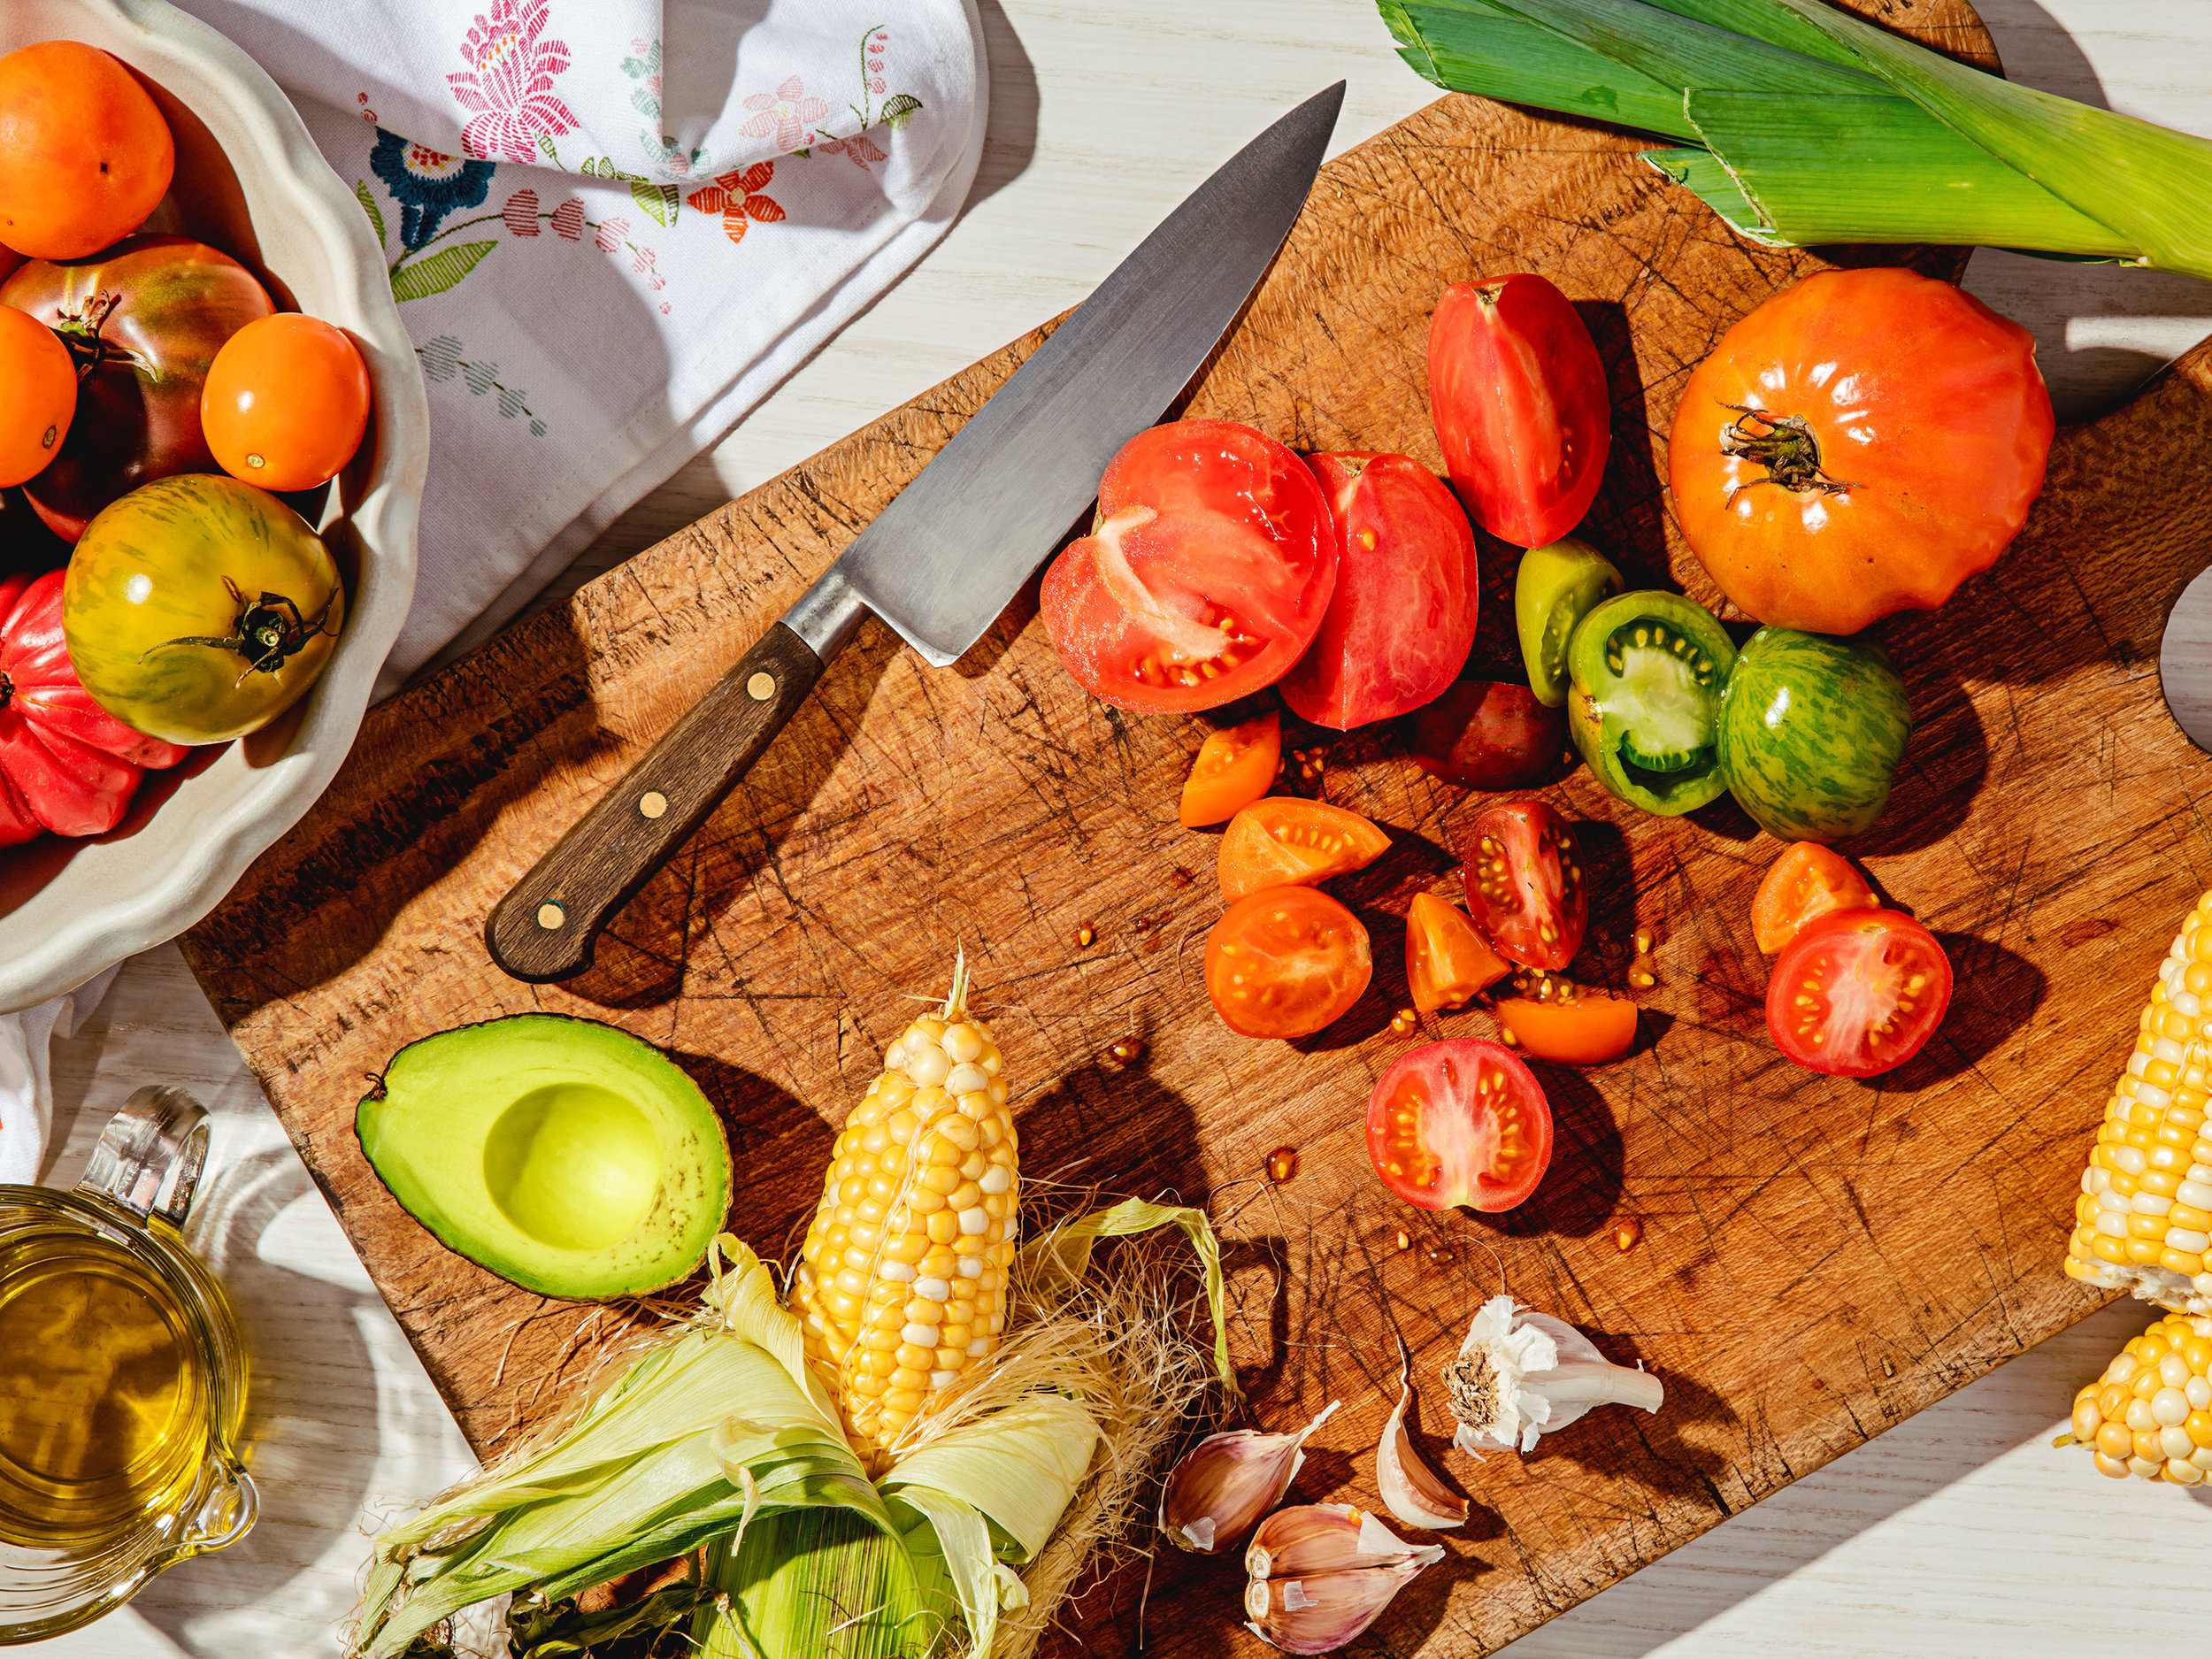 REC_Oct17_CornBisque_ingredients_022_RGB_v2_4x3.jpg